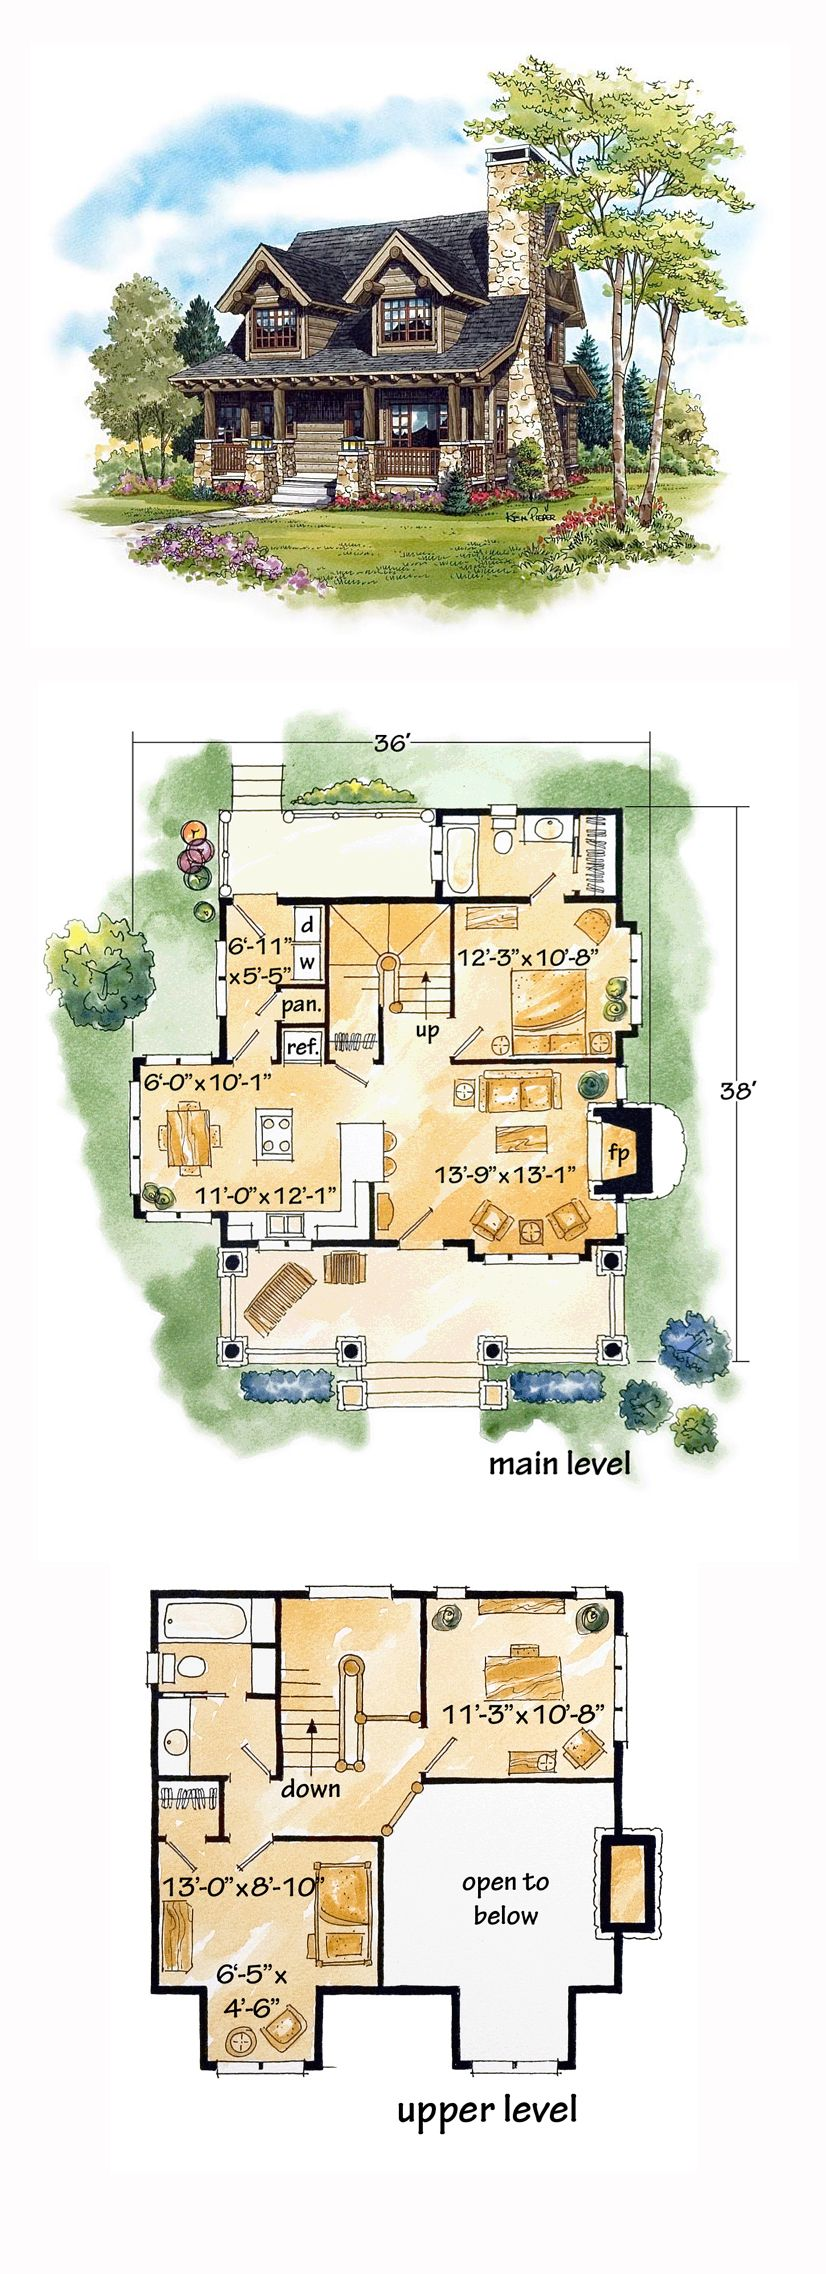 Log house plan 43212 total living area 1362 sq ft 2 for 2 bedroom log cabin plans